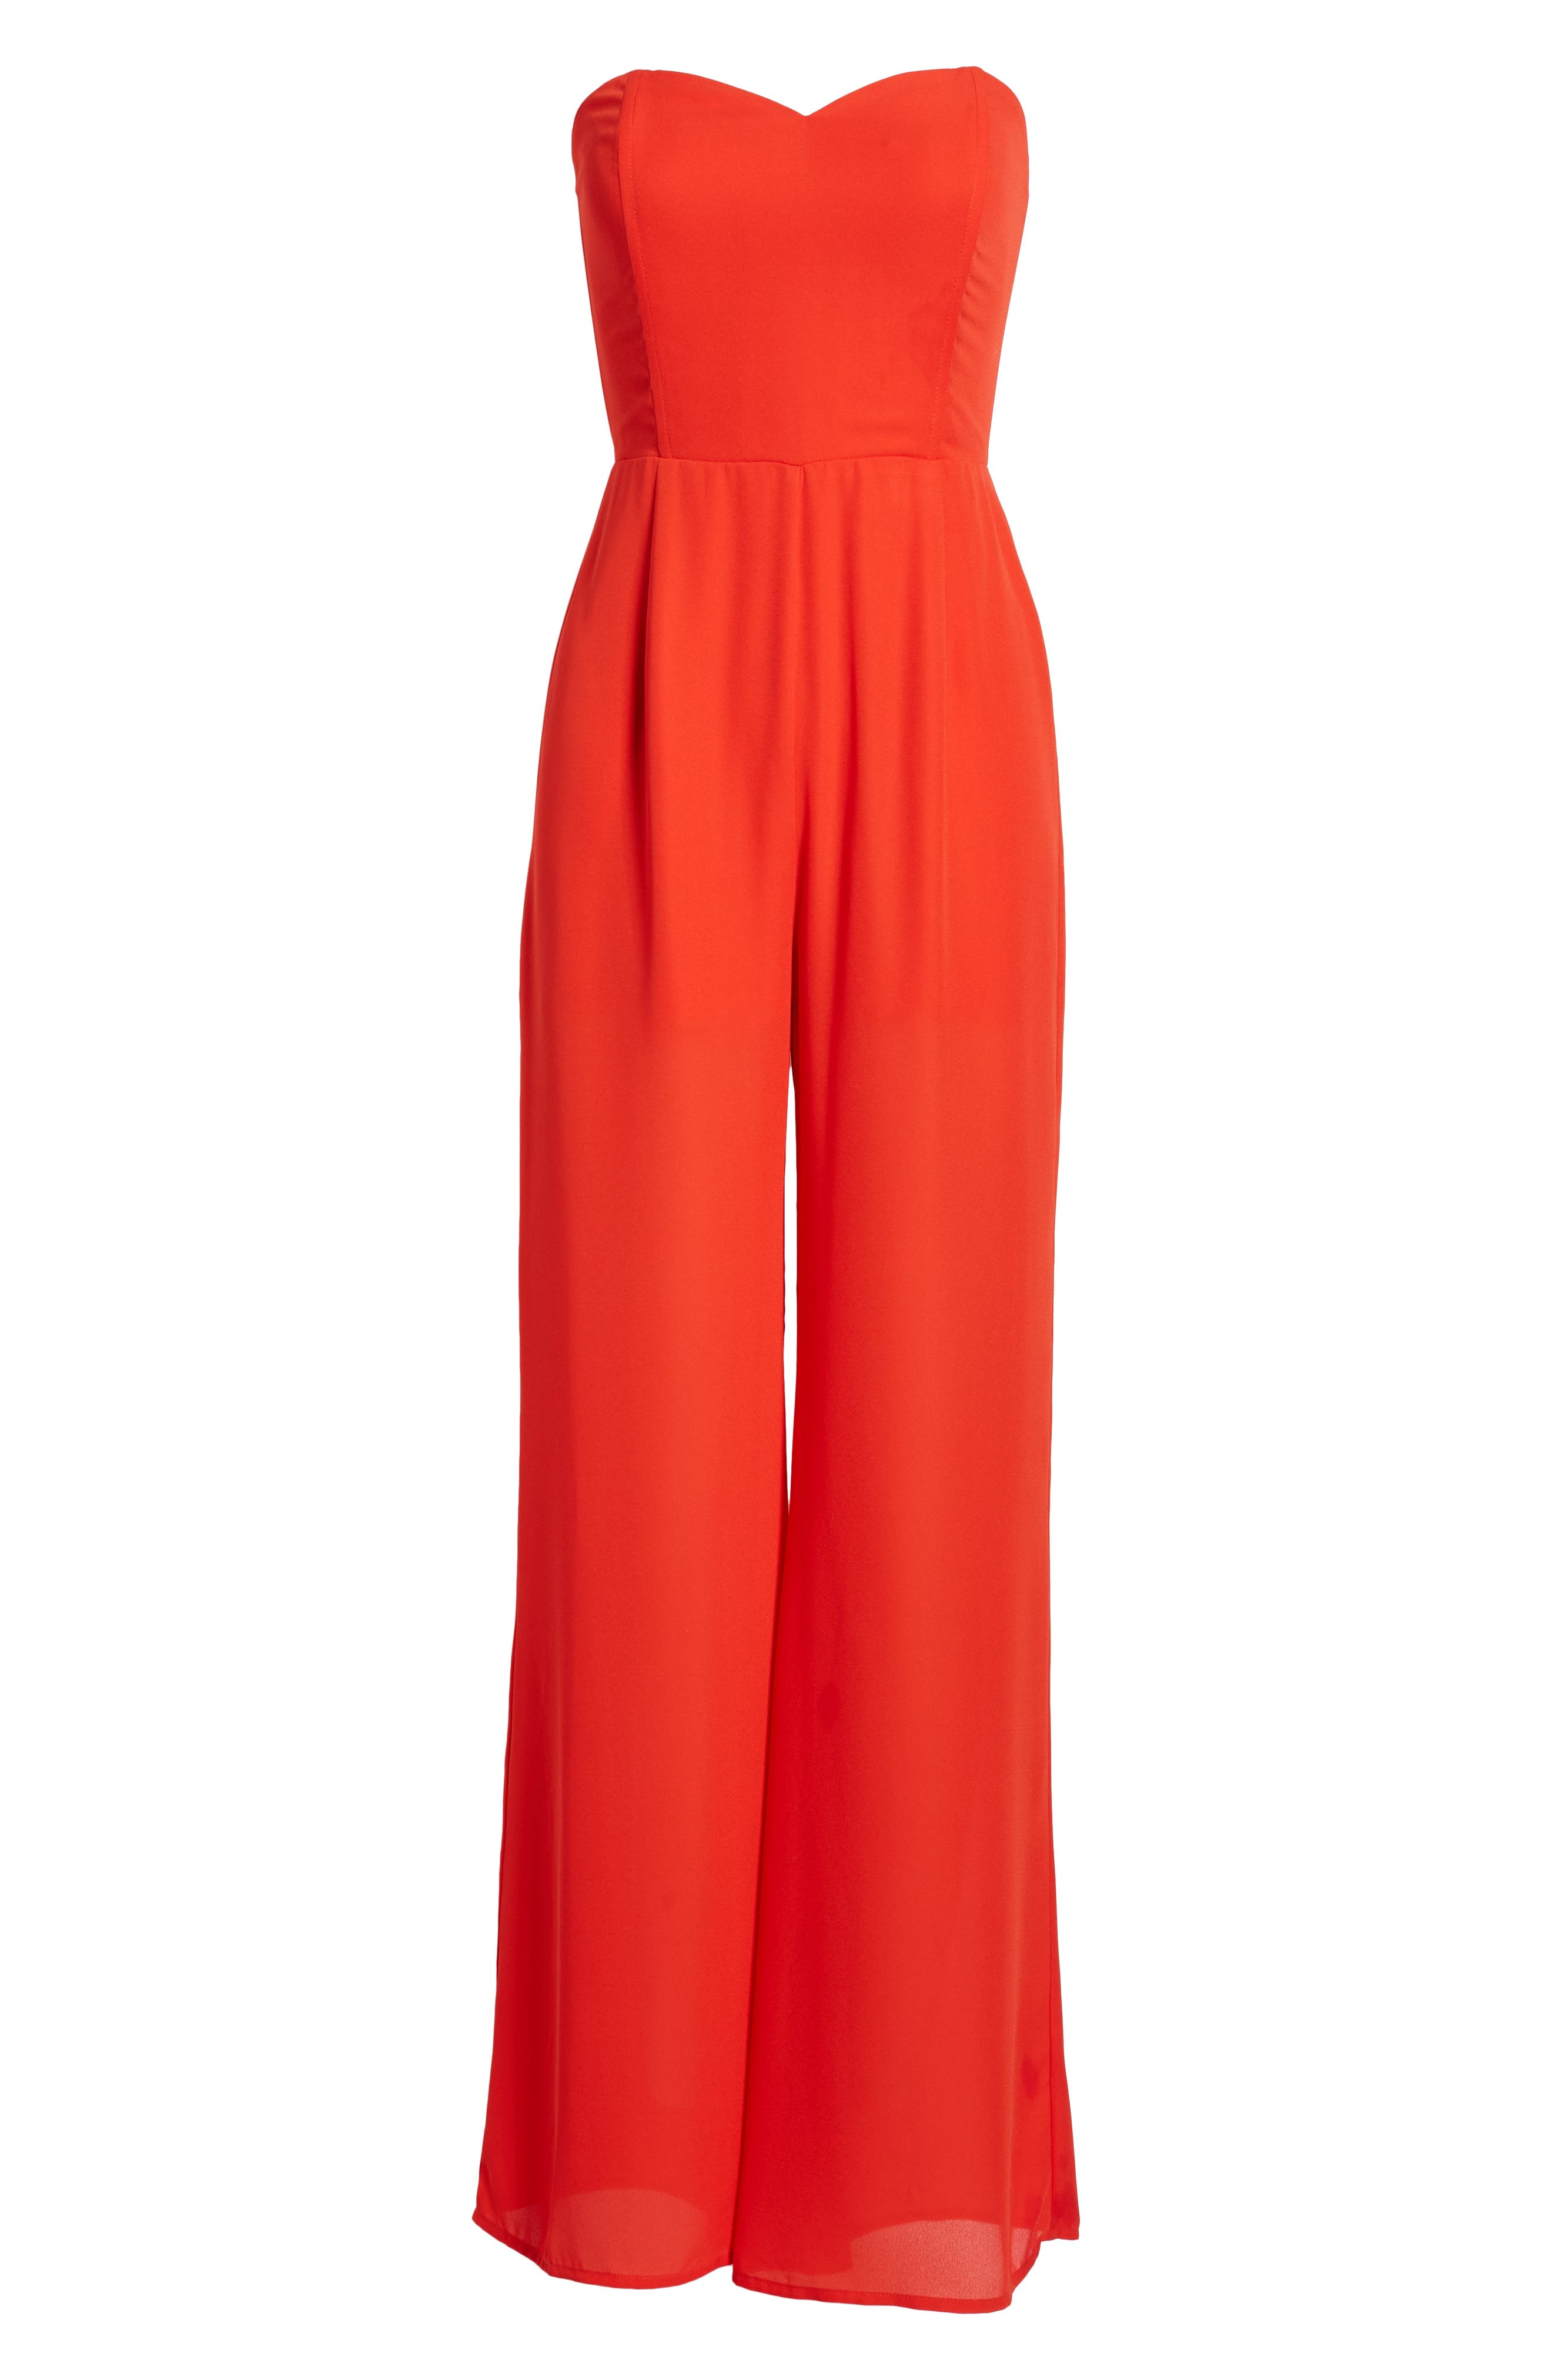 LEITH, Strapless Jumpsuit, Alternate thumbnail 7, color, RED SCARLET